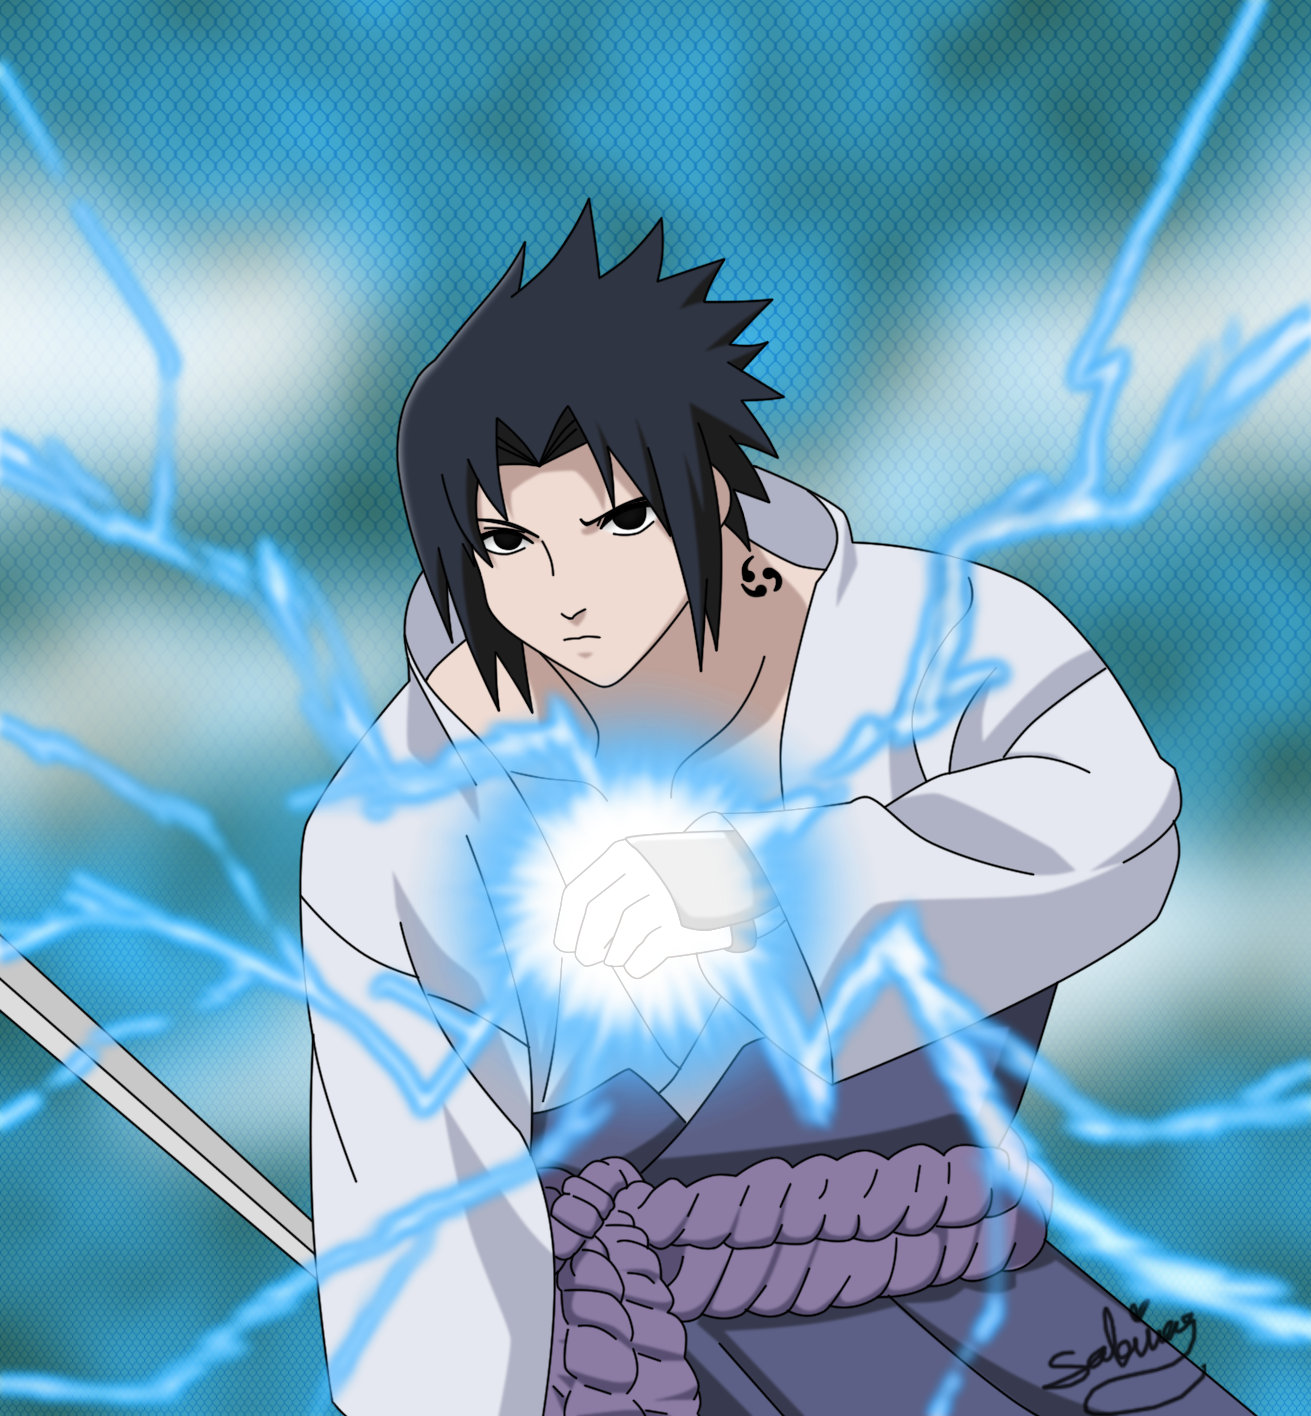 Uchiha Sasuke with Chidori by Garnboll on DeviantArt